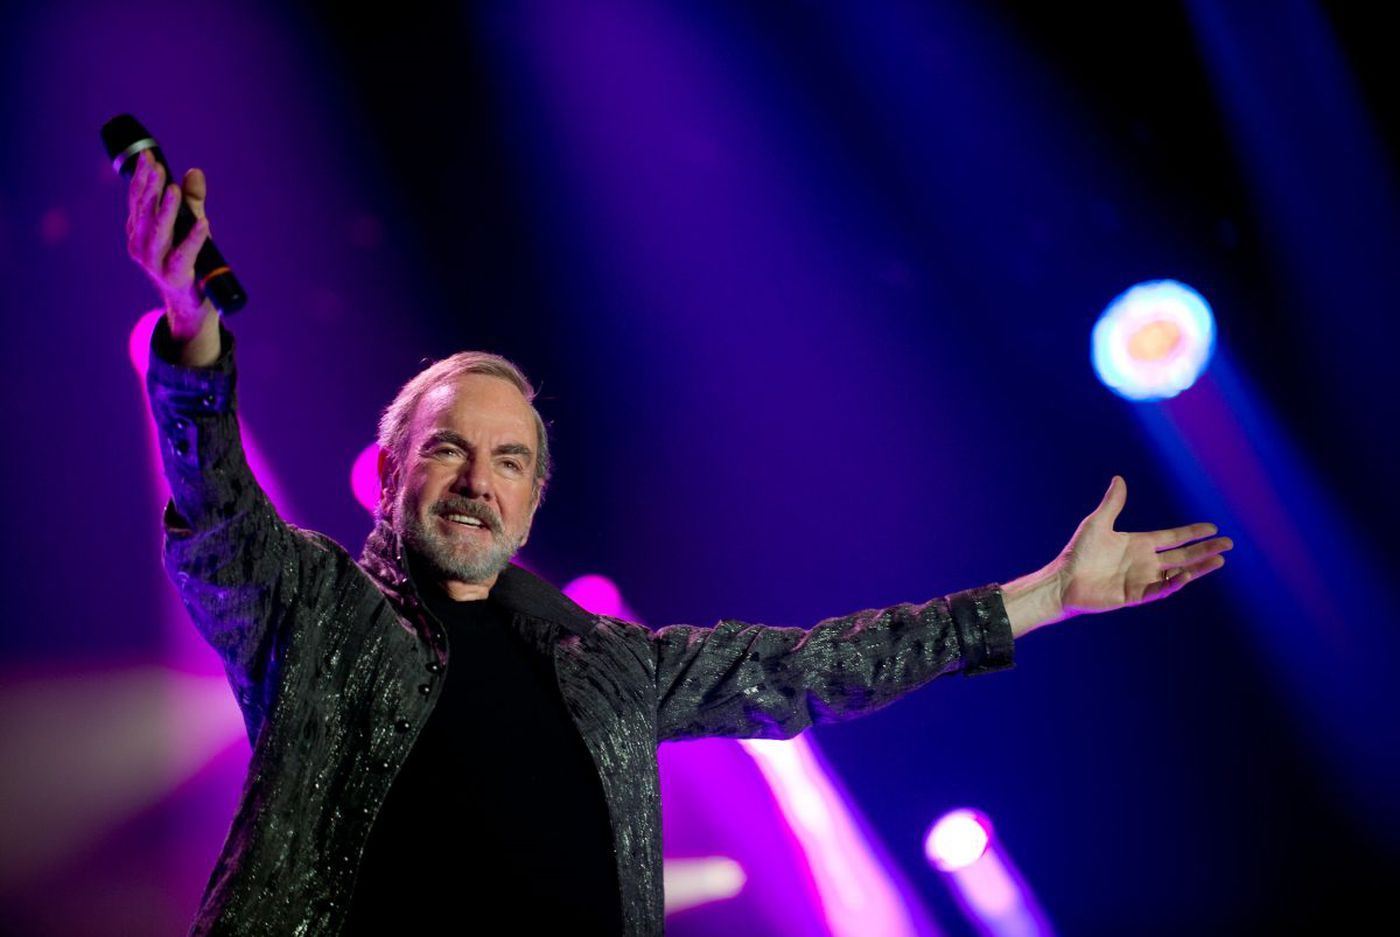 Neil Diamond, with hits and a message of inclusion on his 50th Anniversary tour